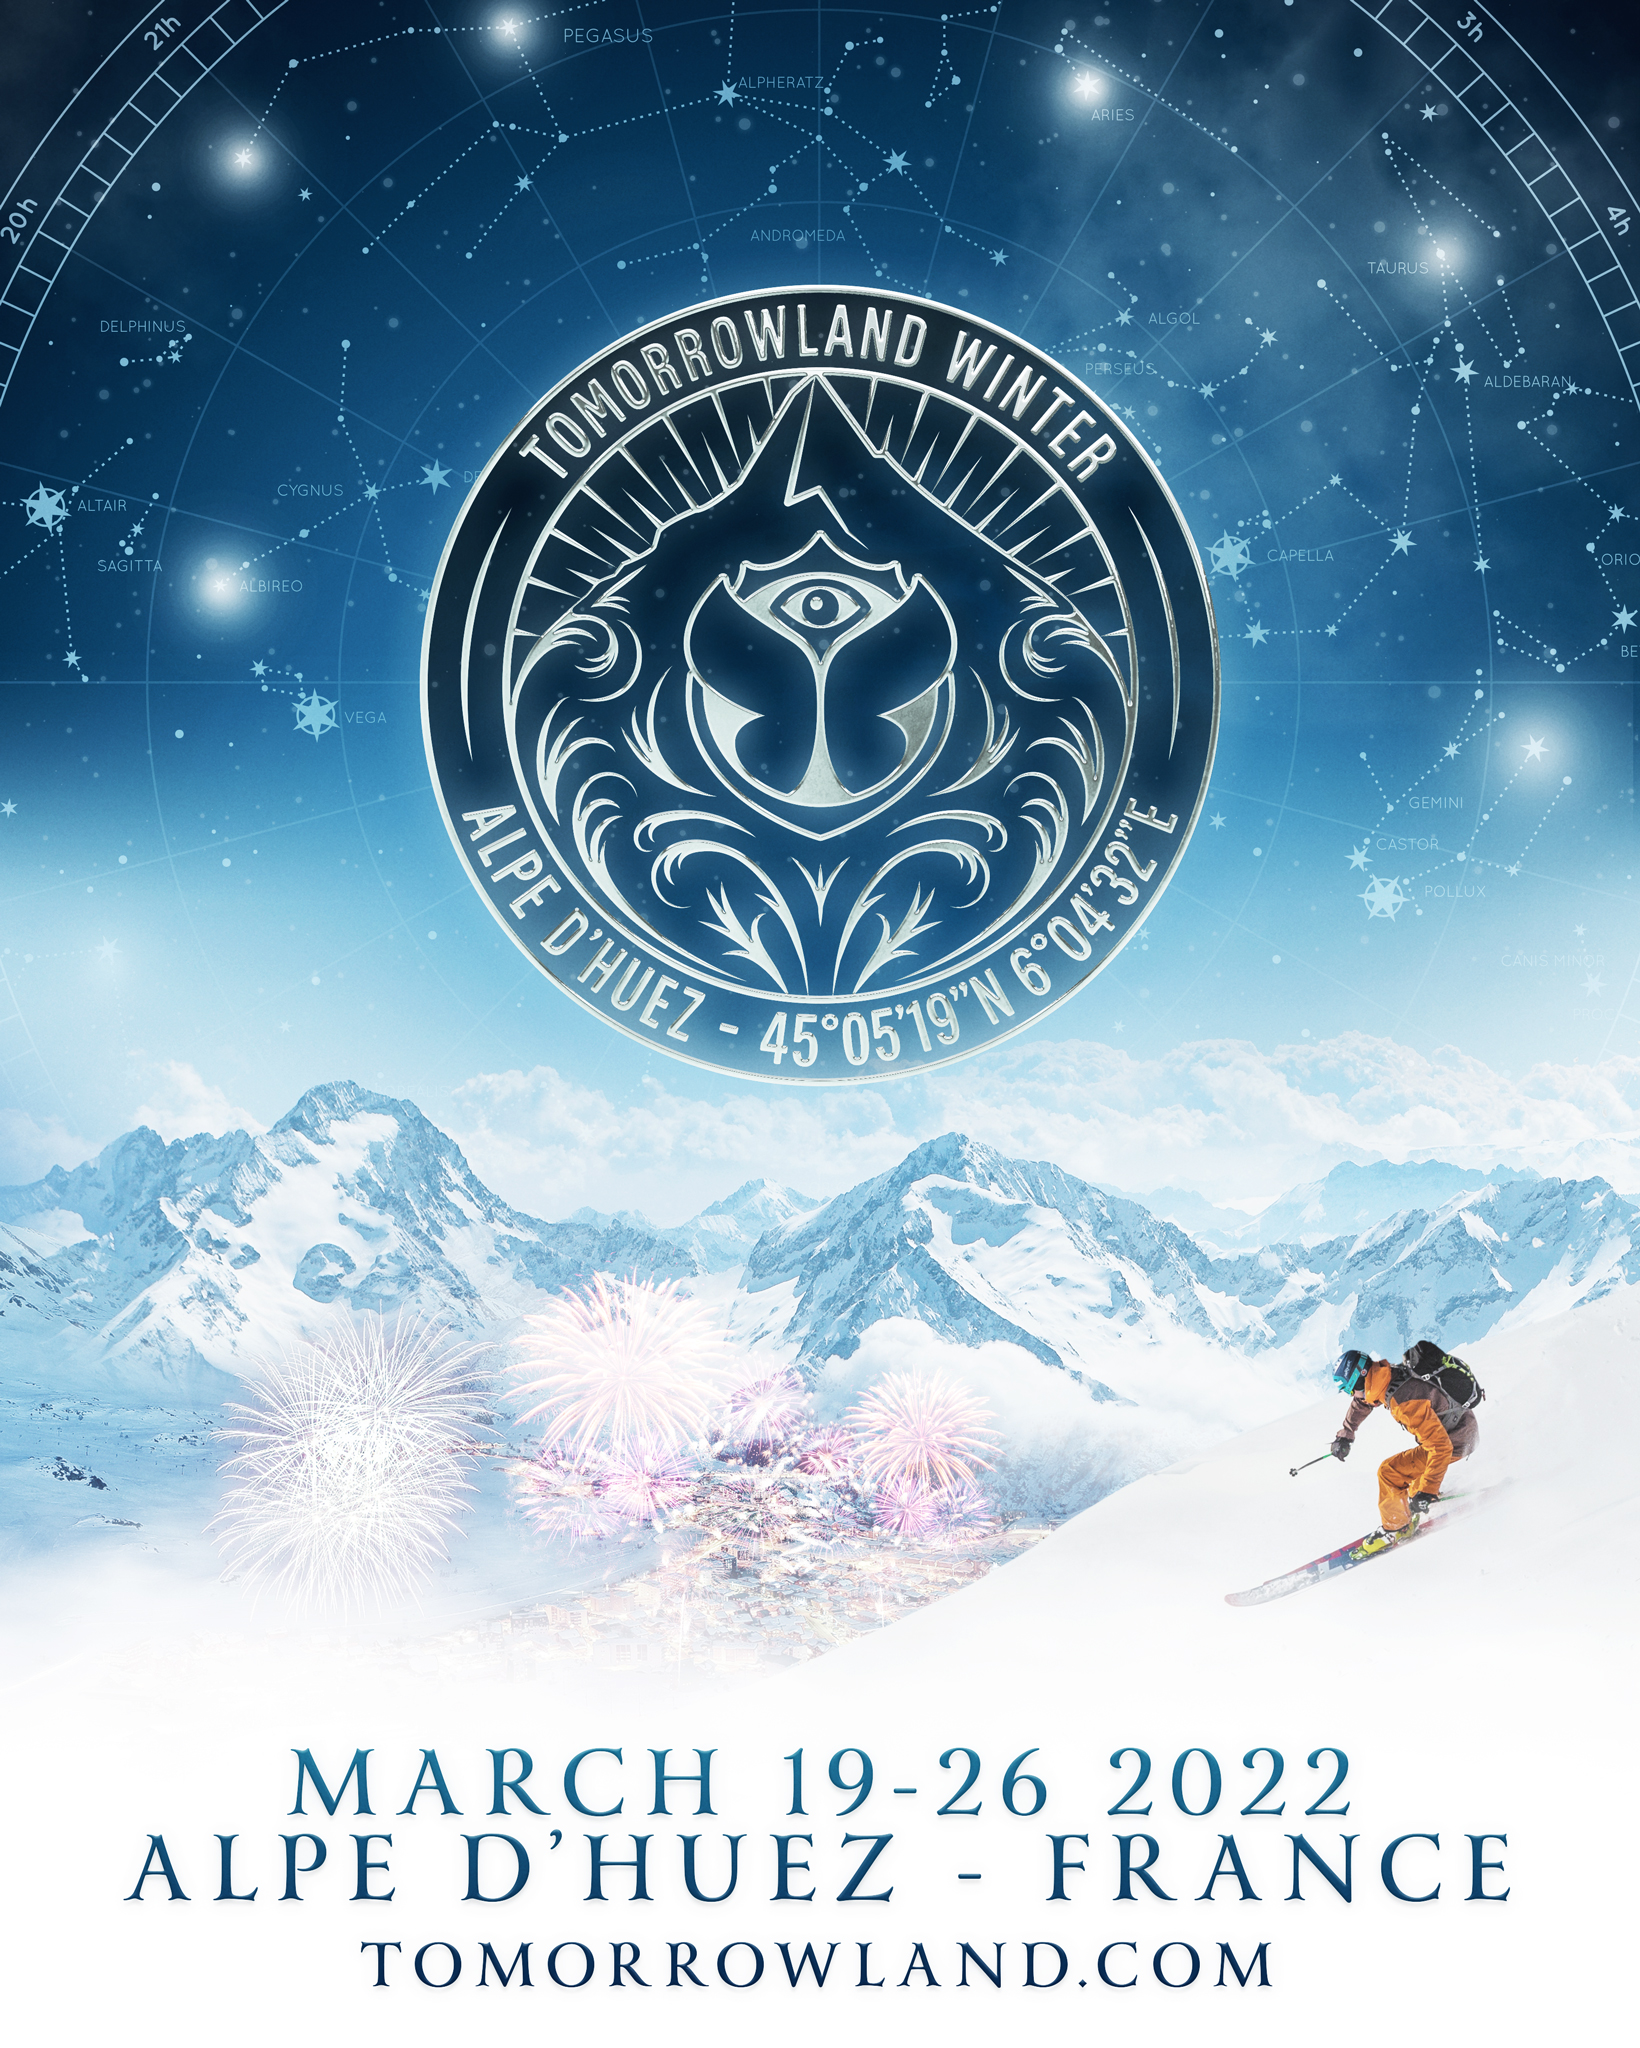 Back on the slopes of Tomorrowland Winter!